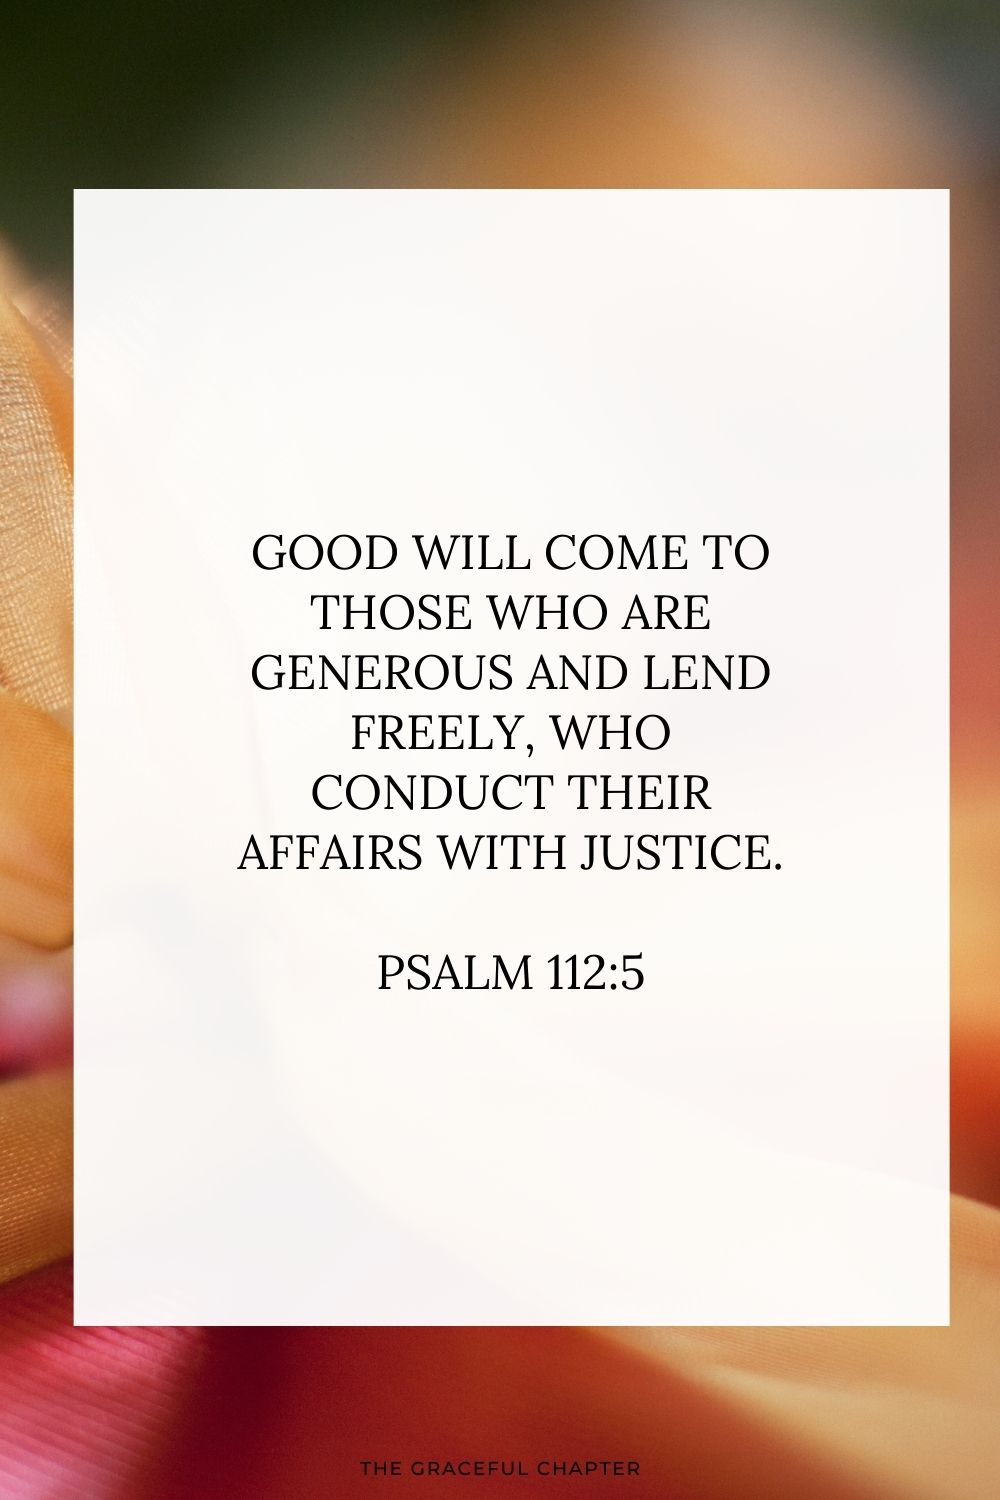 Good will come to those who are generous and lend freely, who conduct their affairs with justice. Psalm 112:5